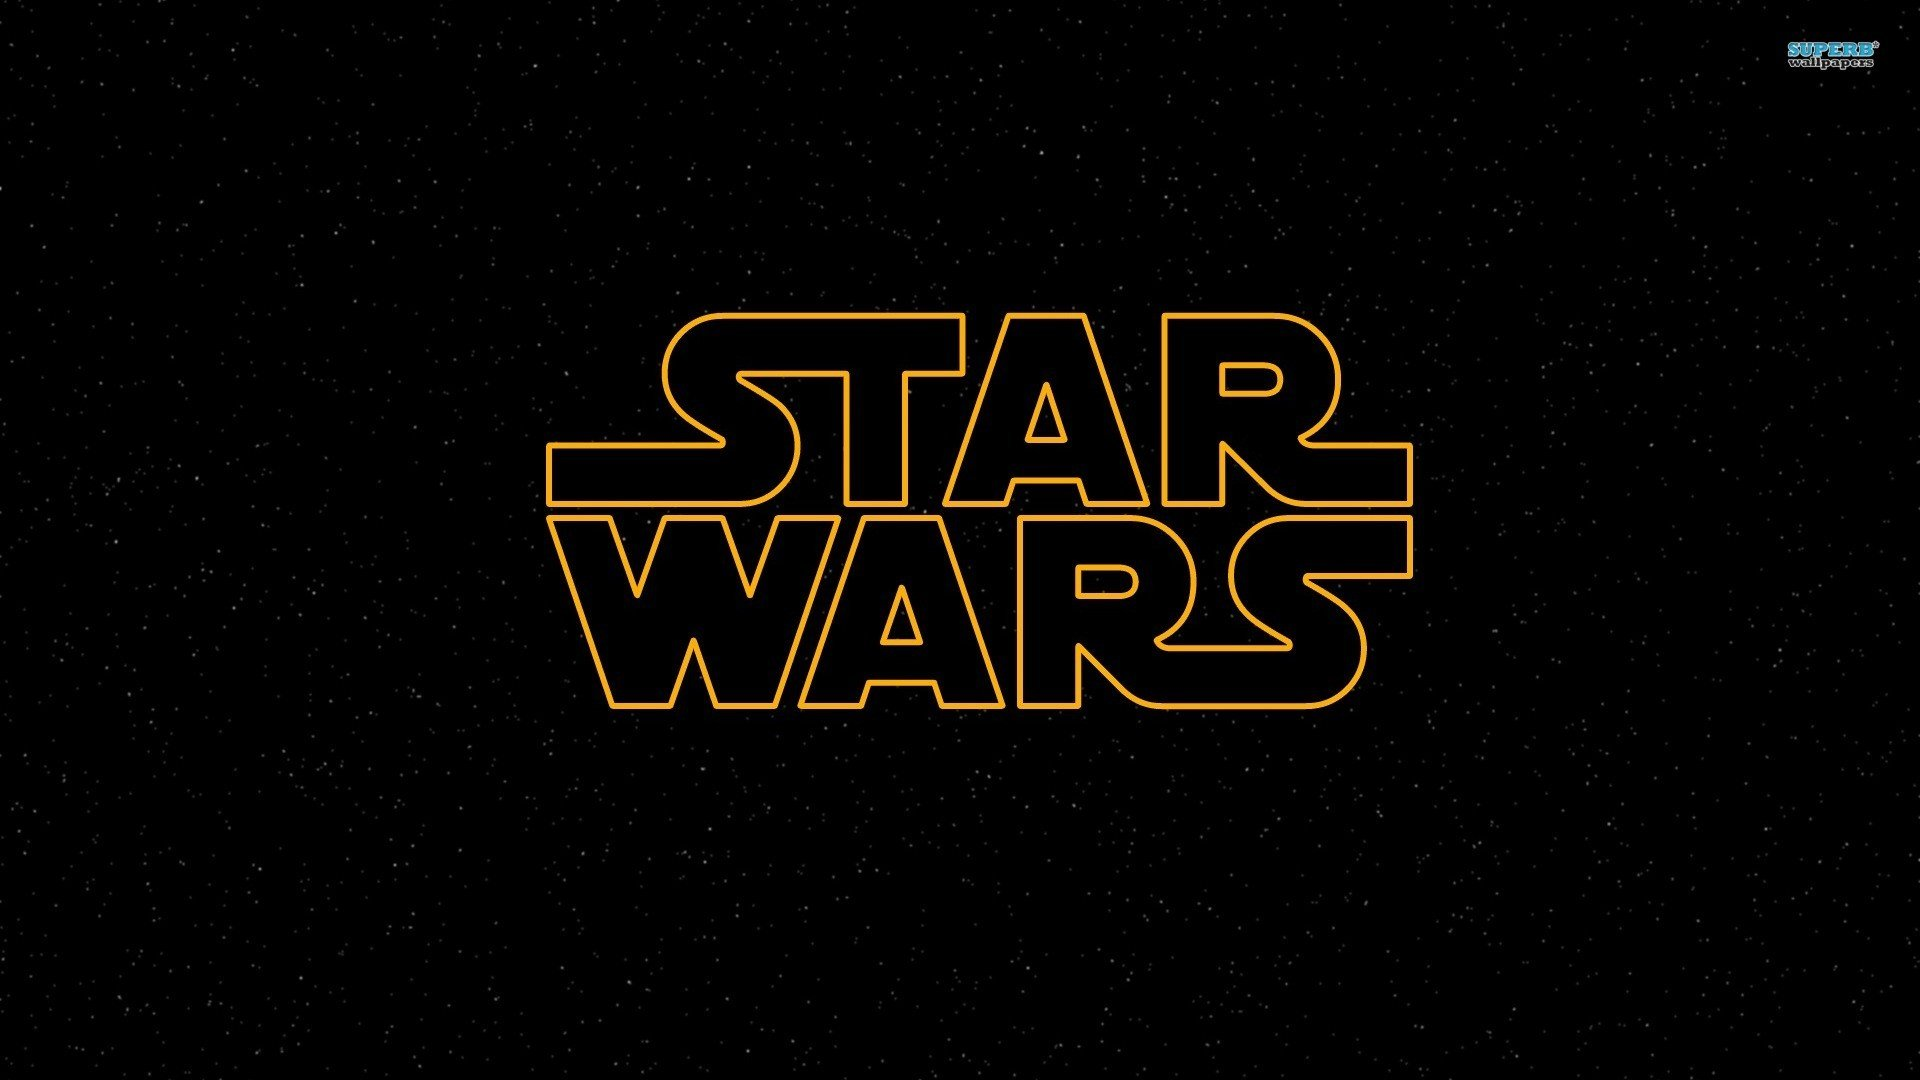 Star Wars Hd Wallpapers Desktop And Mobile Images Photos